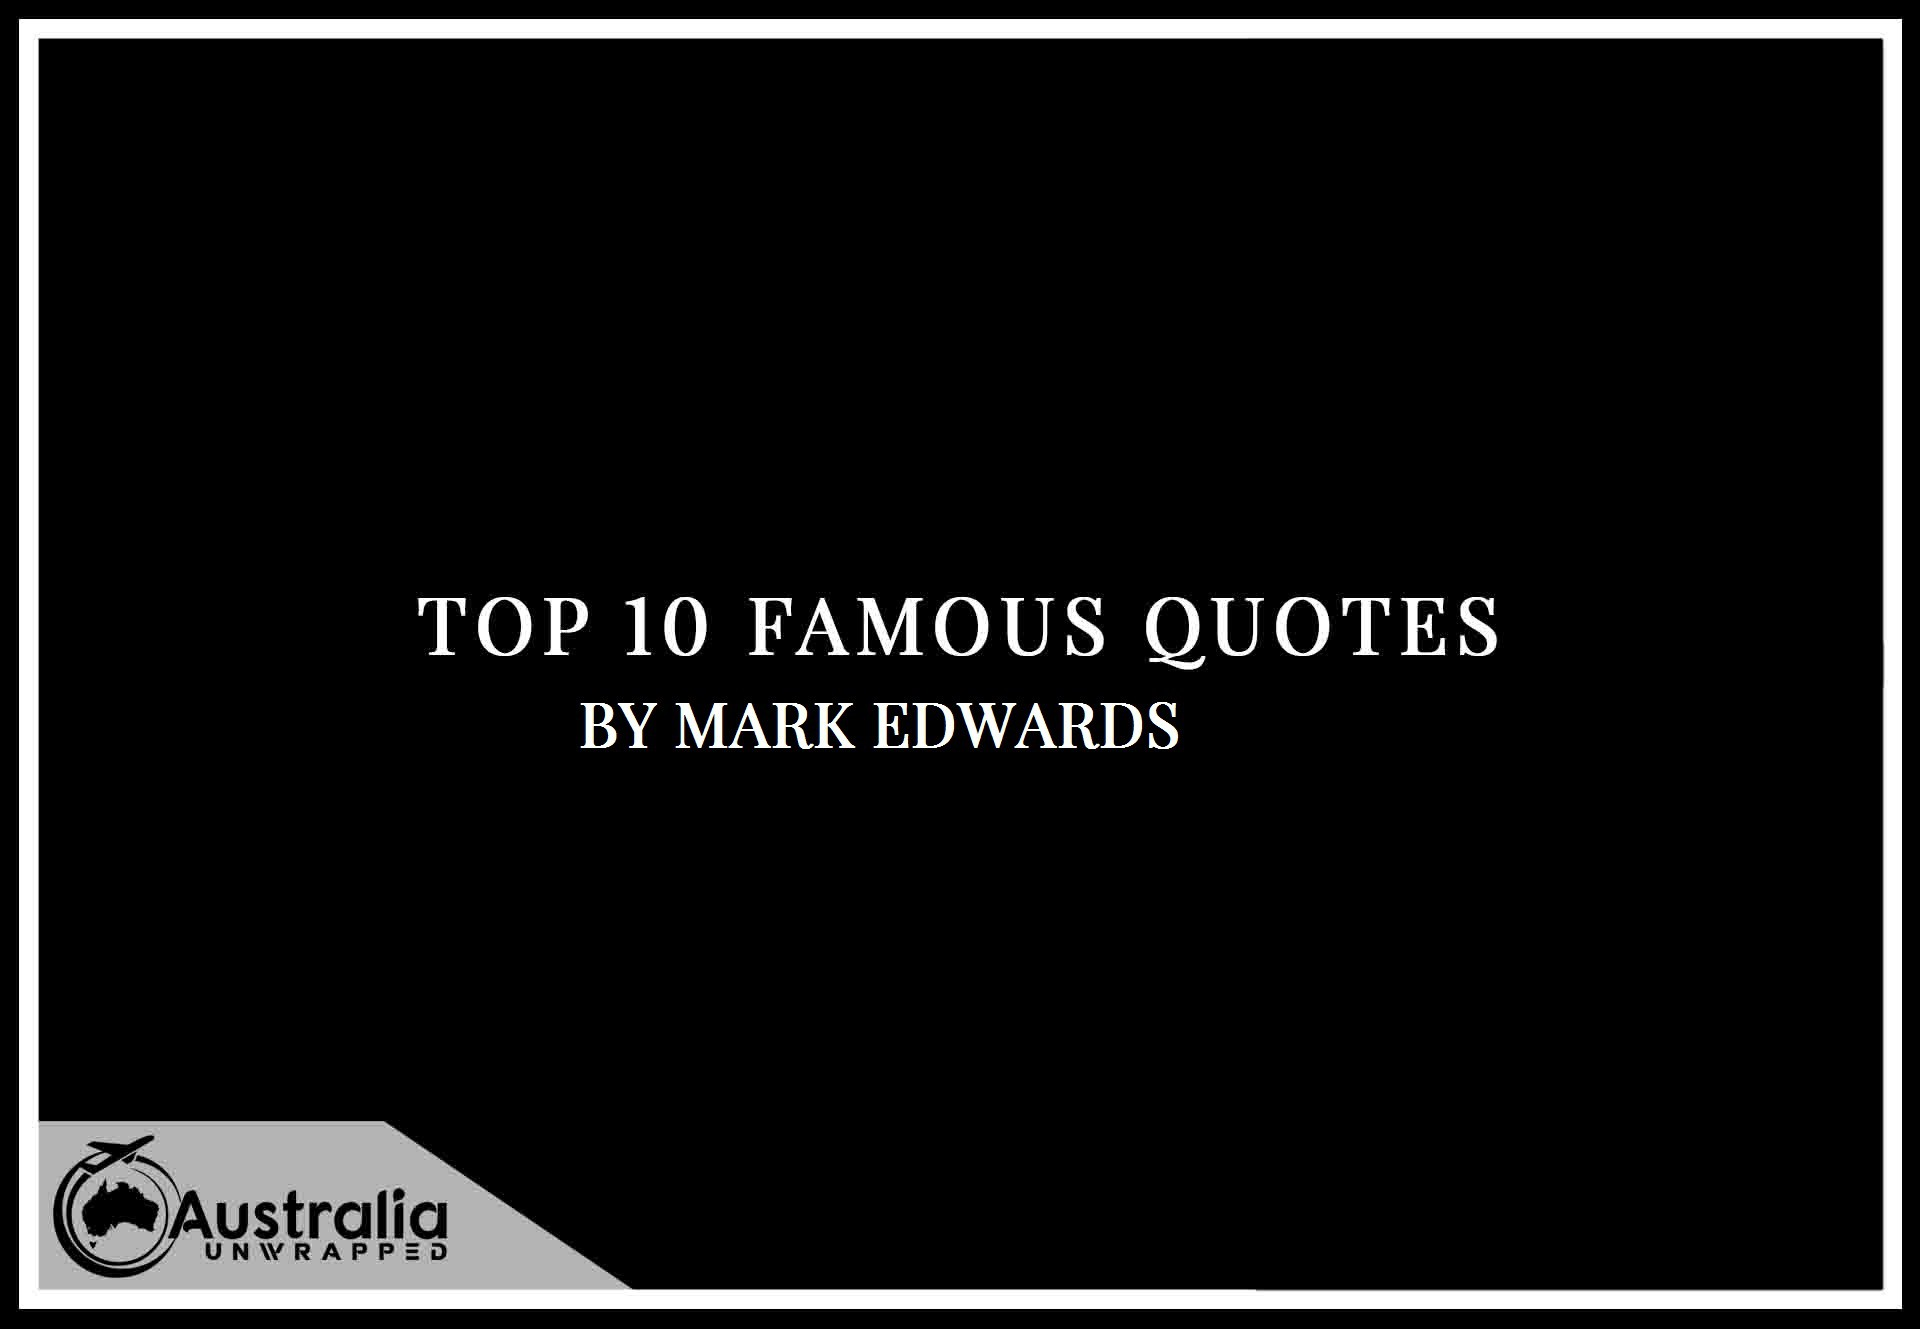 Mark Edwards's Top 10 Popular and Famous Quotes